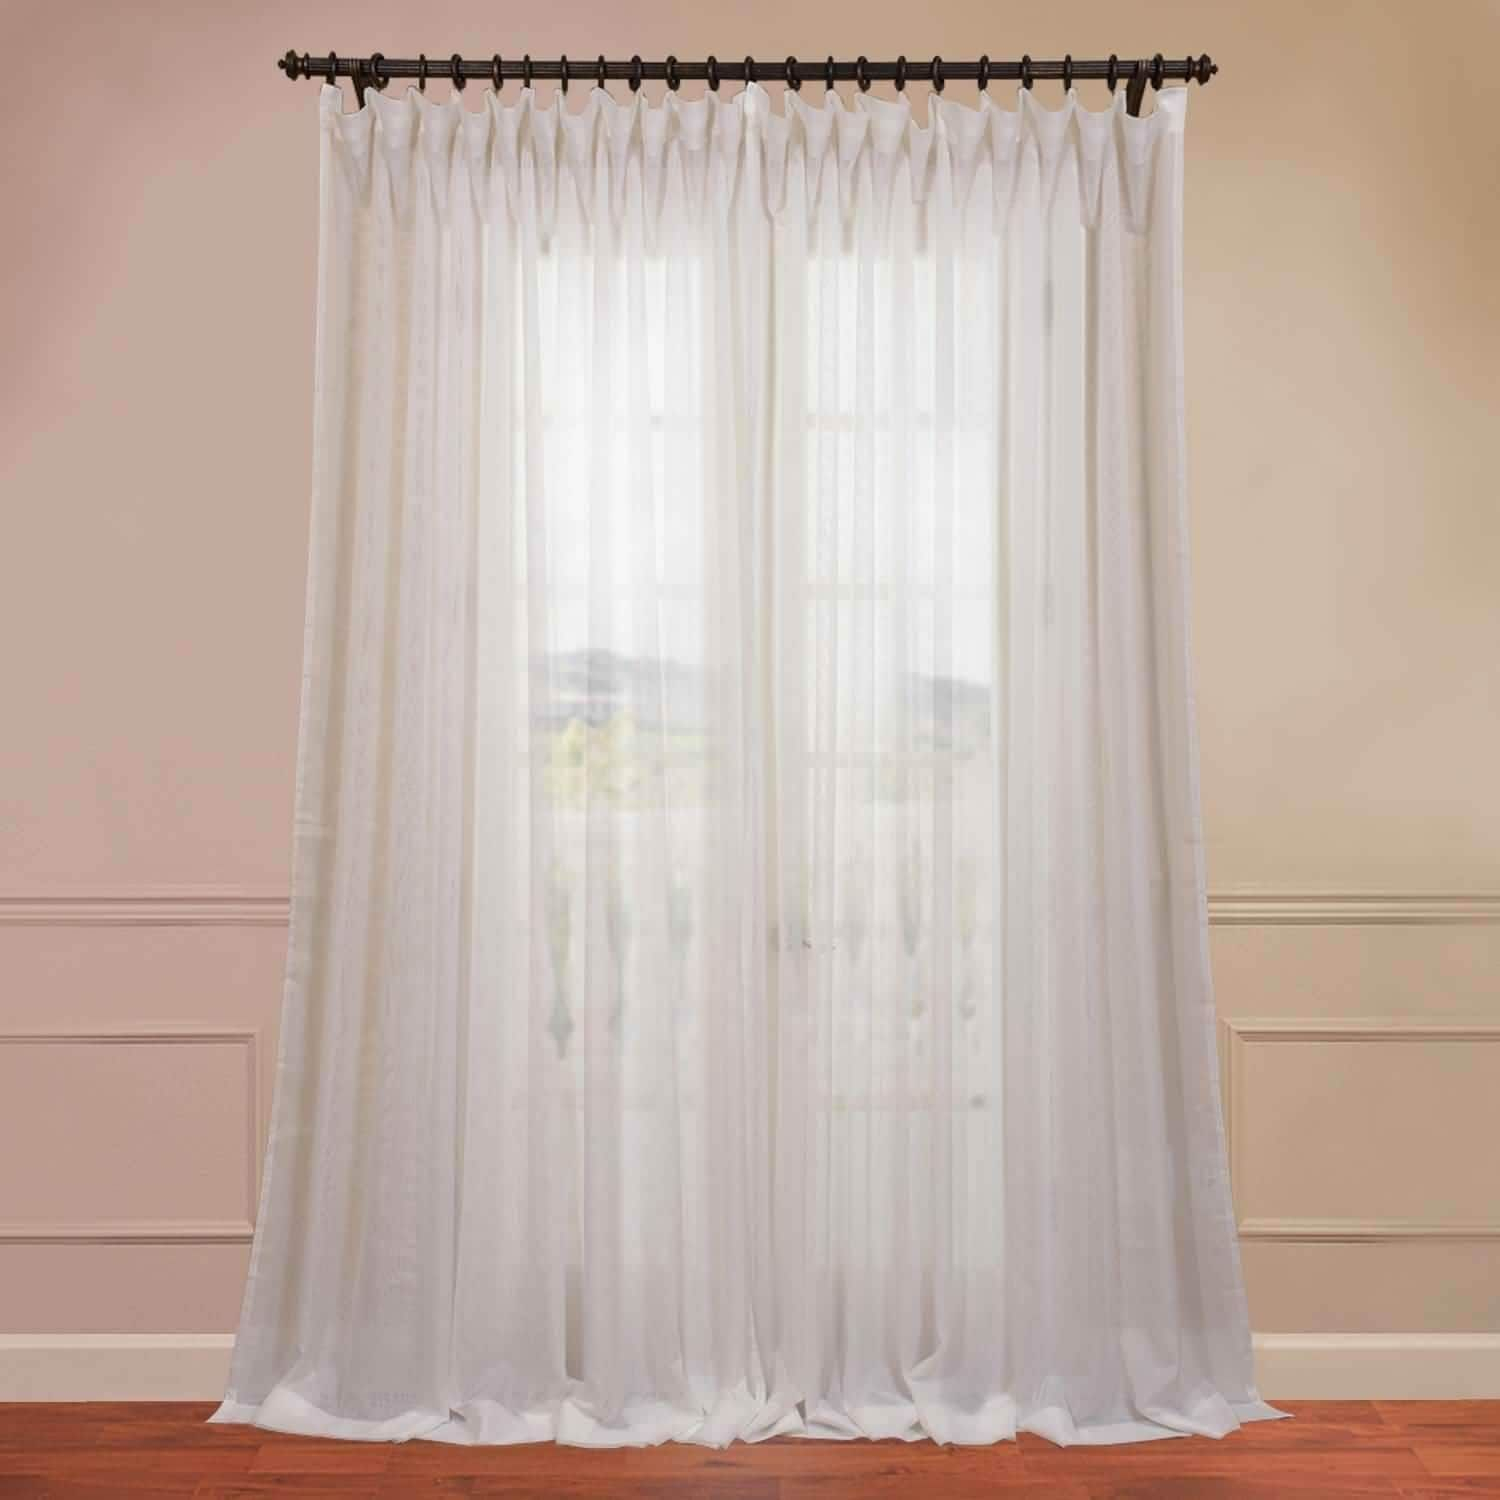 Exclusive Fabrics Signature Off White Extra Wide Double Pertaining To Signature White Double Layer Sheer Curtain Panels (View 12 of 30)